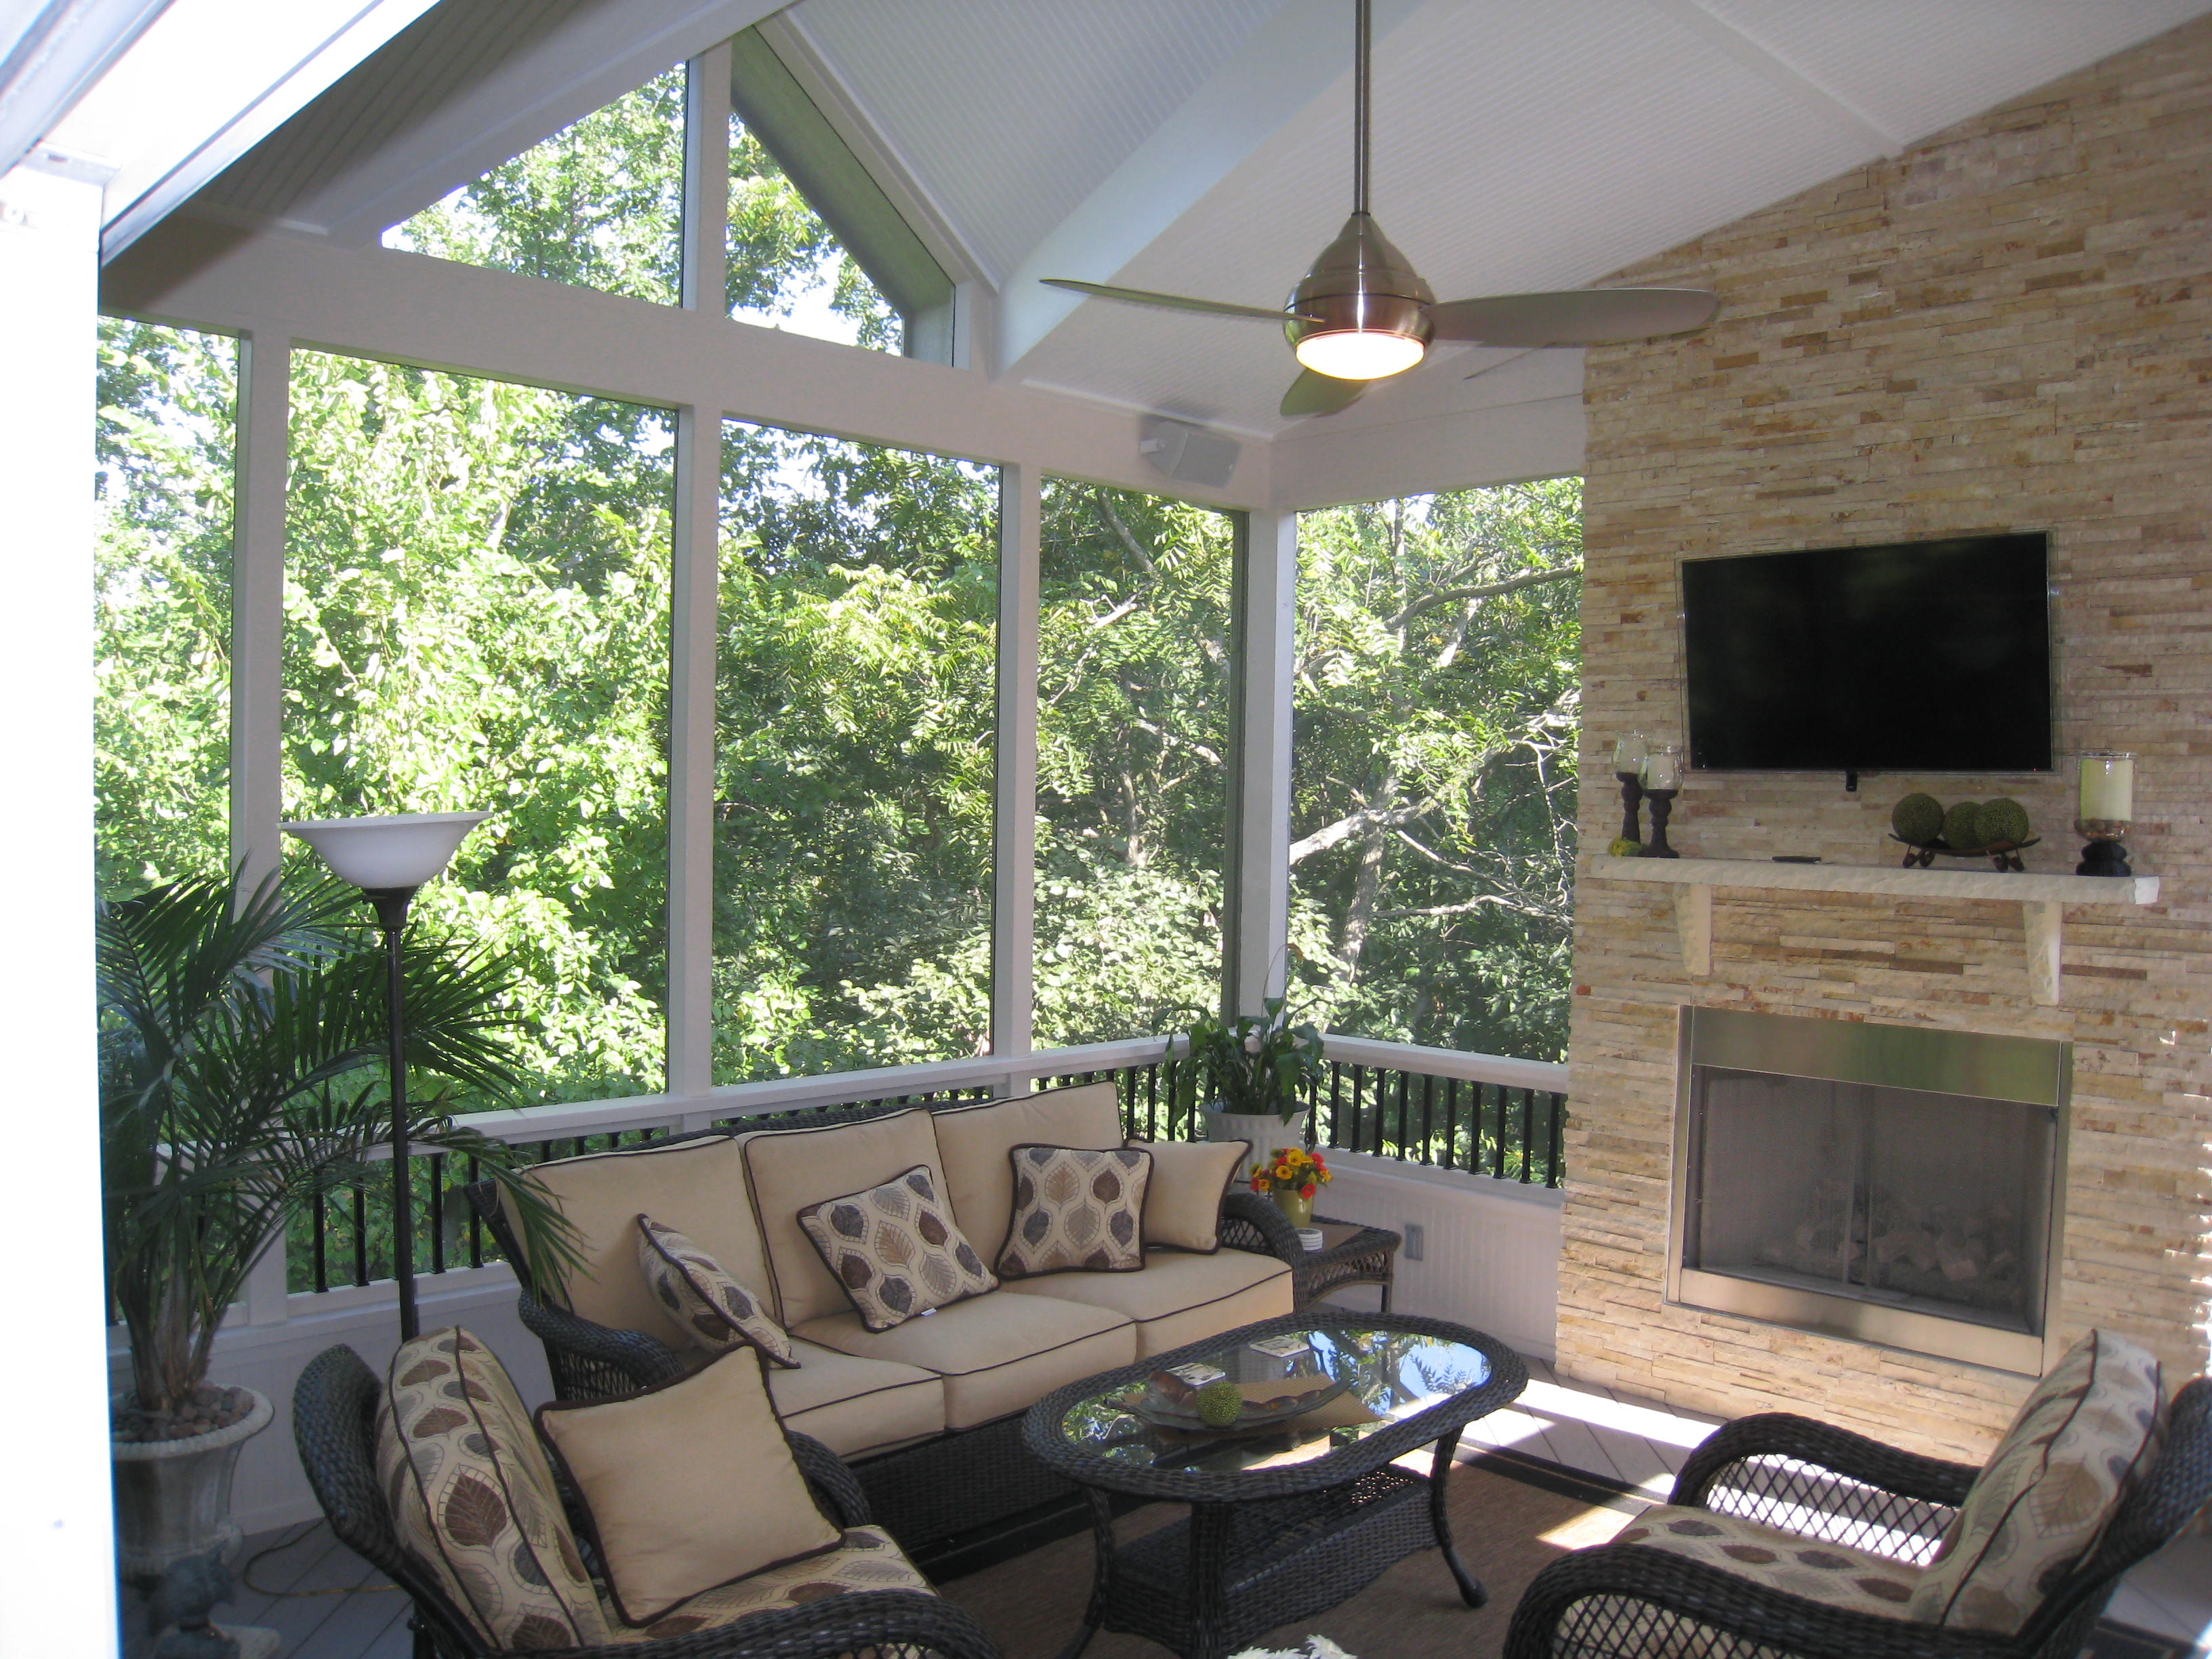 Outdoor Fireplaces Where To Start For Your Kansas City